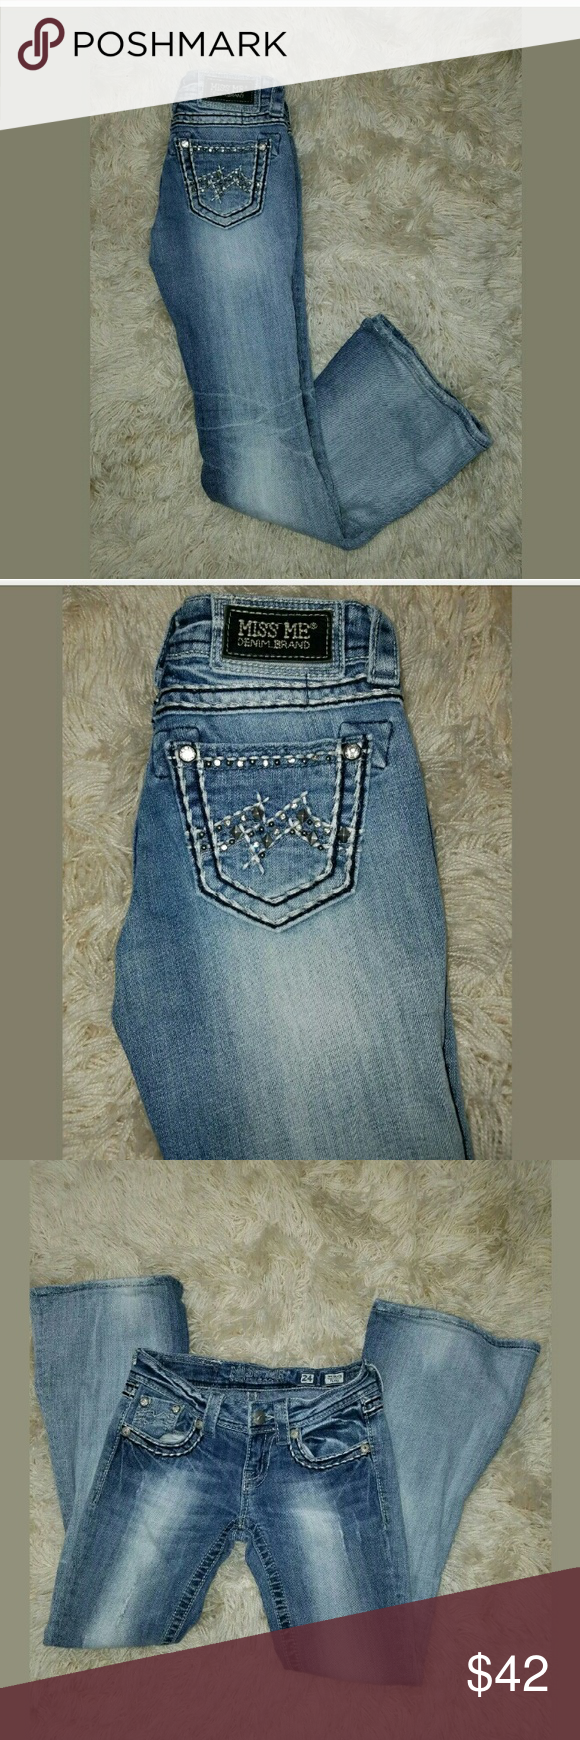 Womens Miss Me Flare Leg Denim Blue Jeans Womens Miss Me Flare Leg Denim Blue Jeans Rhinestone EUC 24 x 28.5   Waist measures 25 inches.  6.5 inch rise.  32 inch hips.  28.5 inch inseam.   Excellent used condition. Smoke free home.   LB Miss Me Jeans Flare & Wide Leg